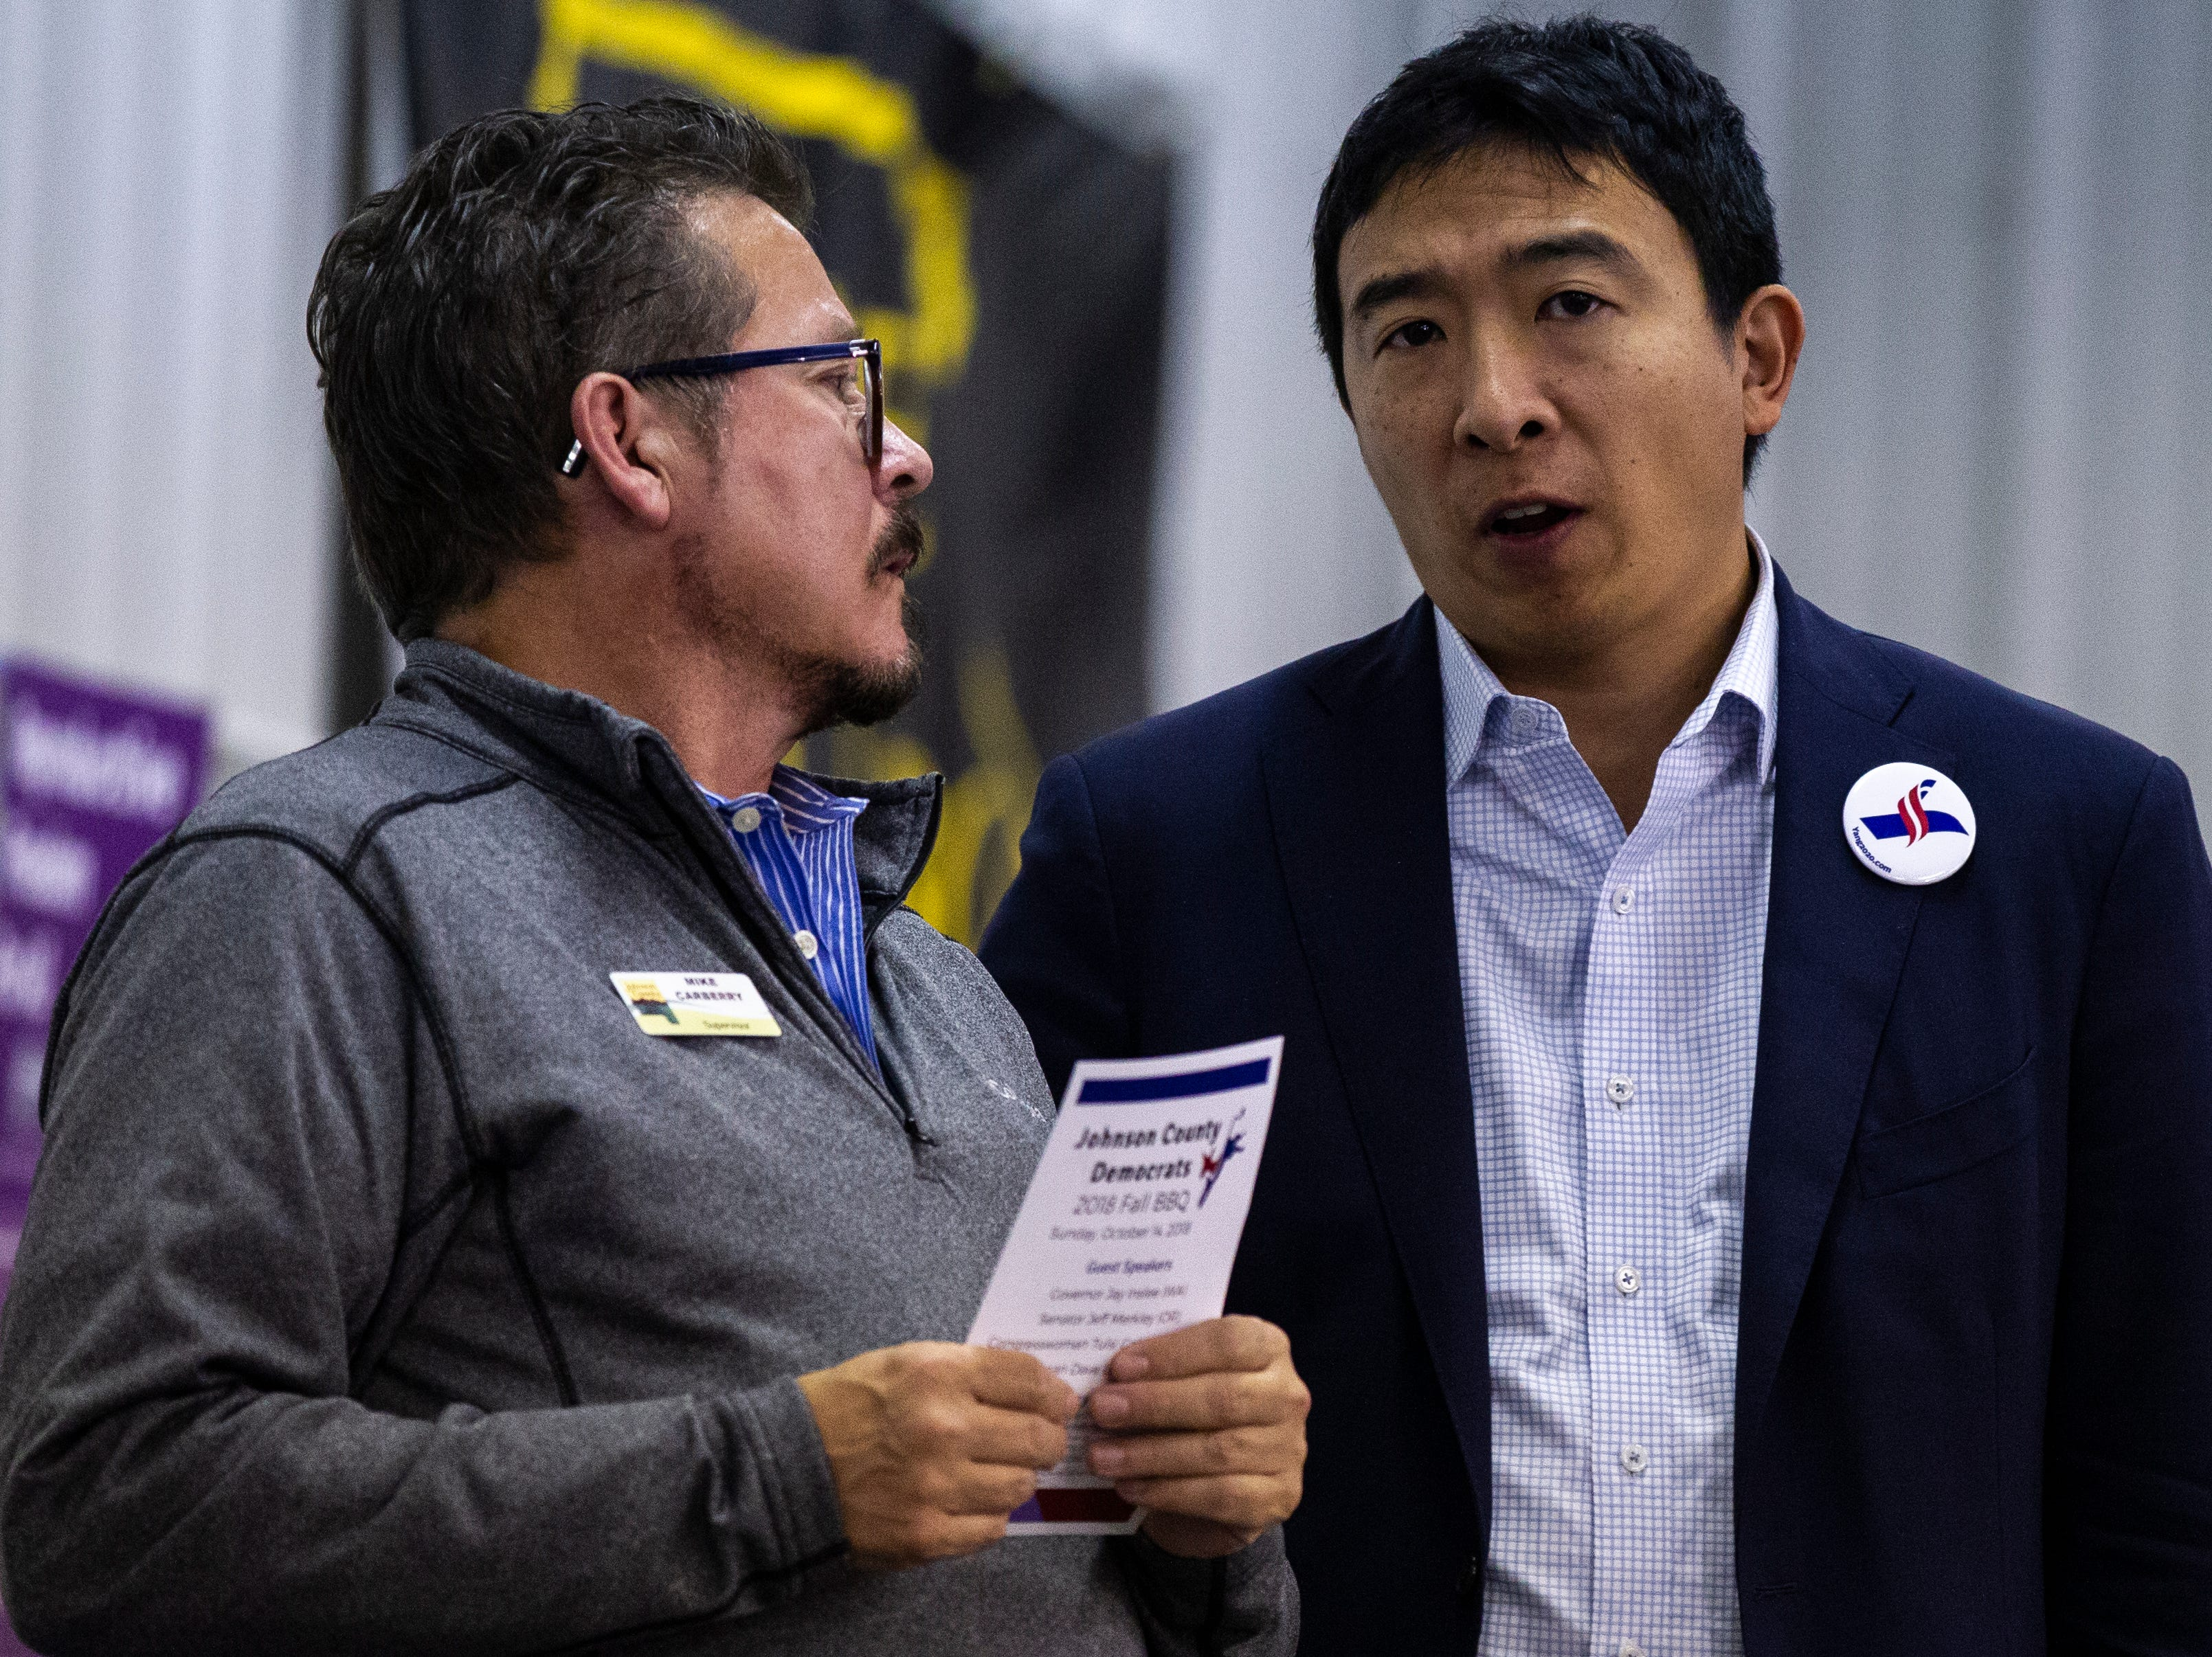 Johnson County Supervisor Mike Carberry talks with Andrew Yang, 2020 Democratic presidential candidate from Schenectady, New York, during the Johnson County Democrats annual barbecue fundraiser on Sunday, Oct. 14, 2018, inside Building C at the Johnson County Fairgrounds in Iowa City.